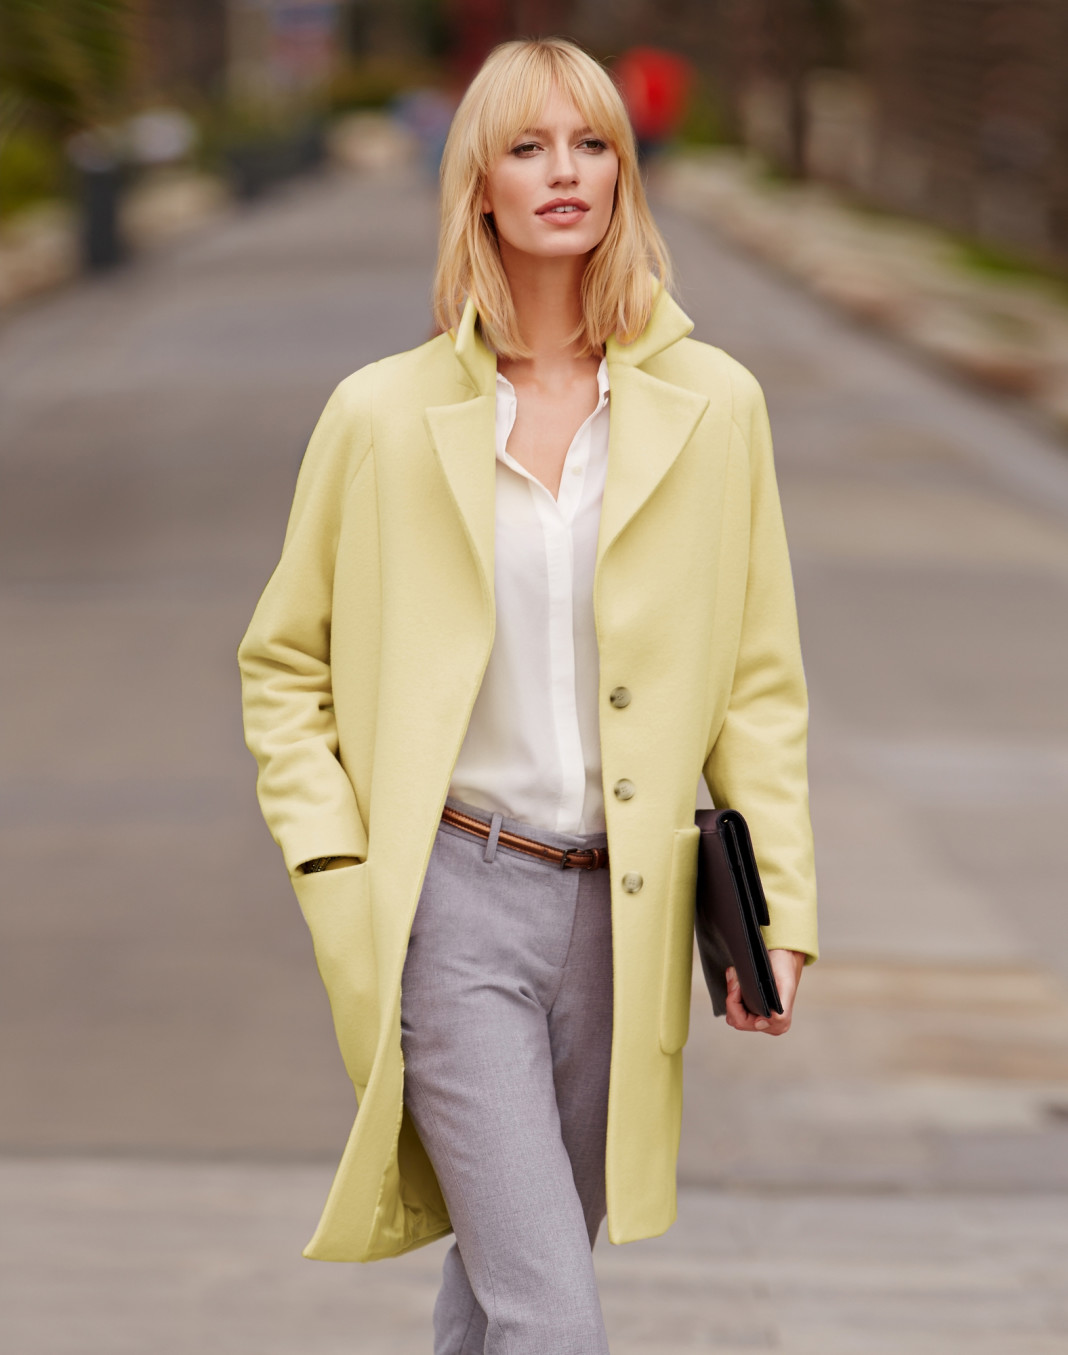 Wearing yellow Pure Collection Cashmere Blend Coat